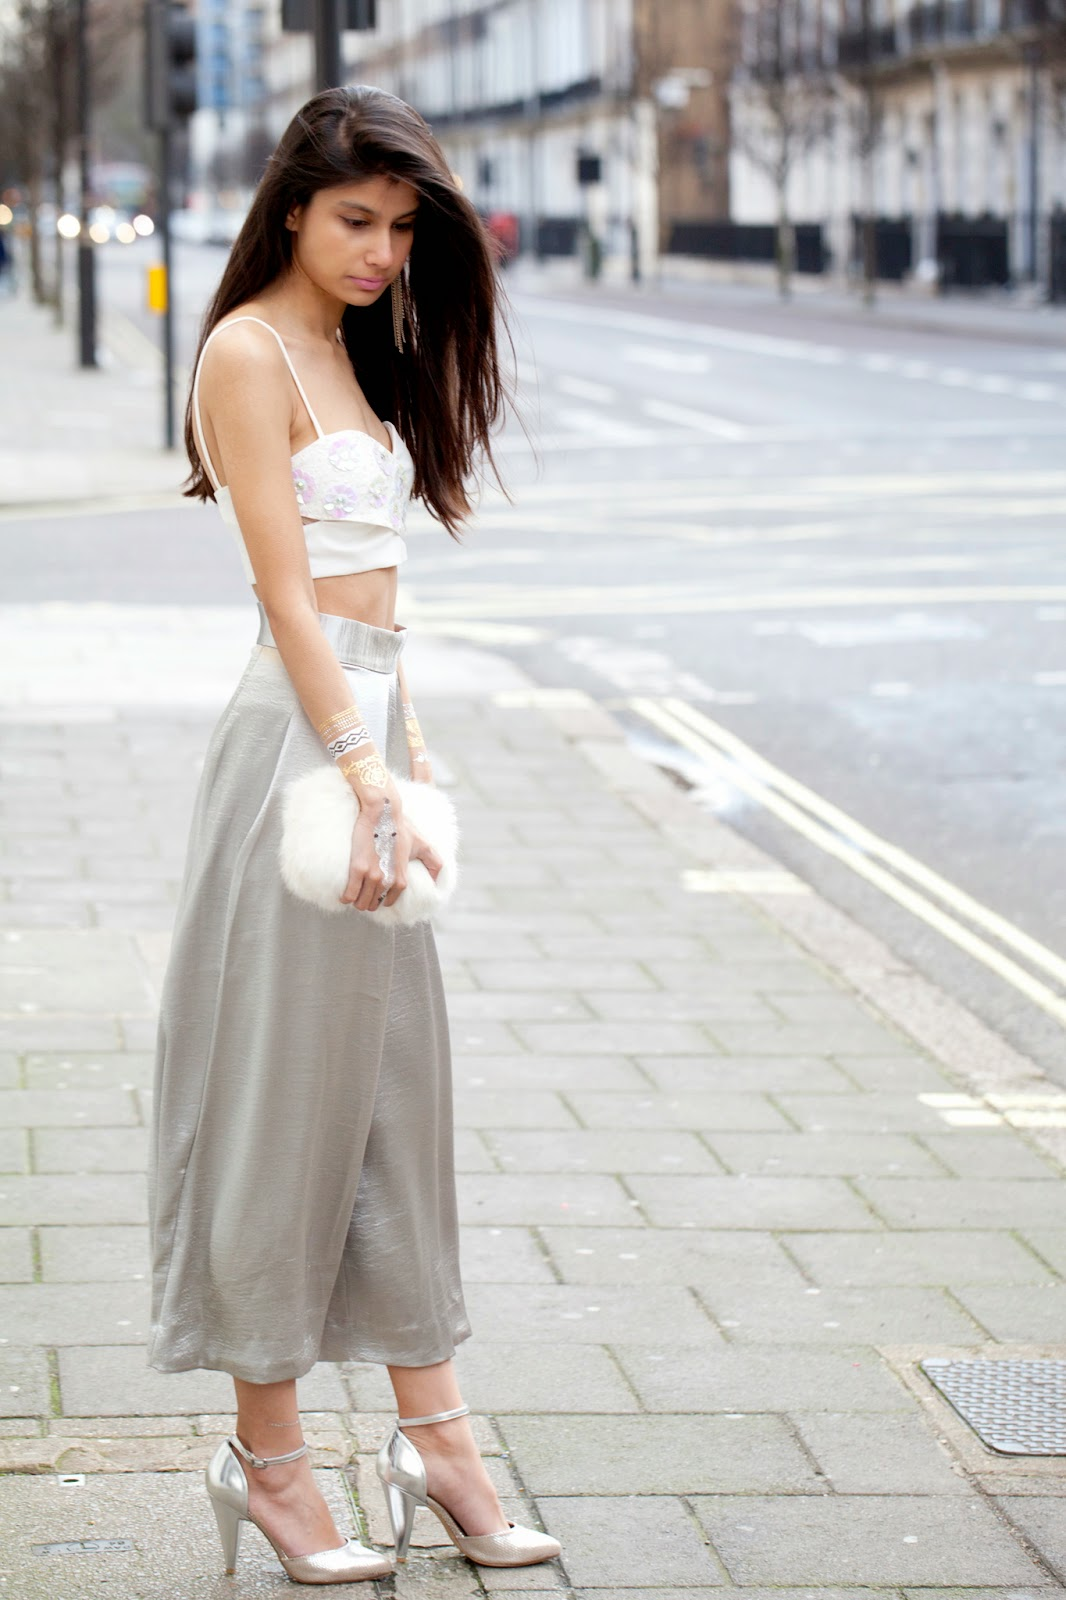 Culottes + Crop Top Outfit Ideas